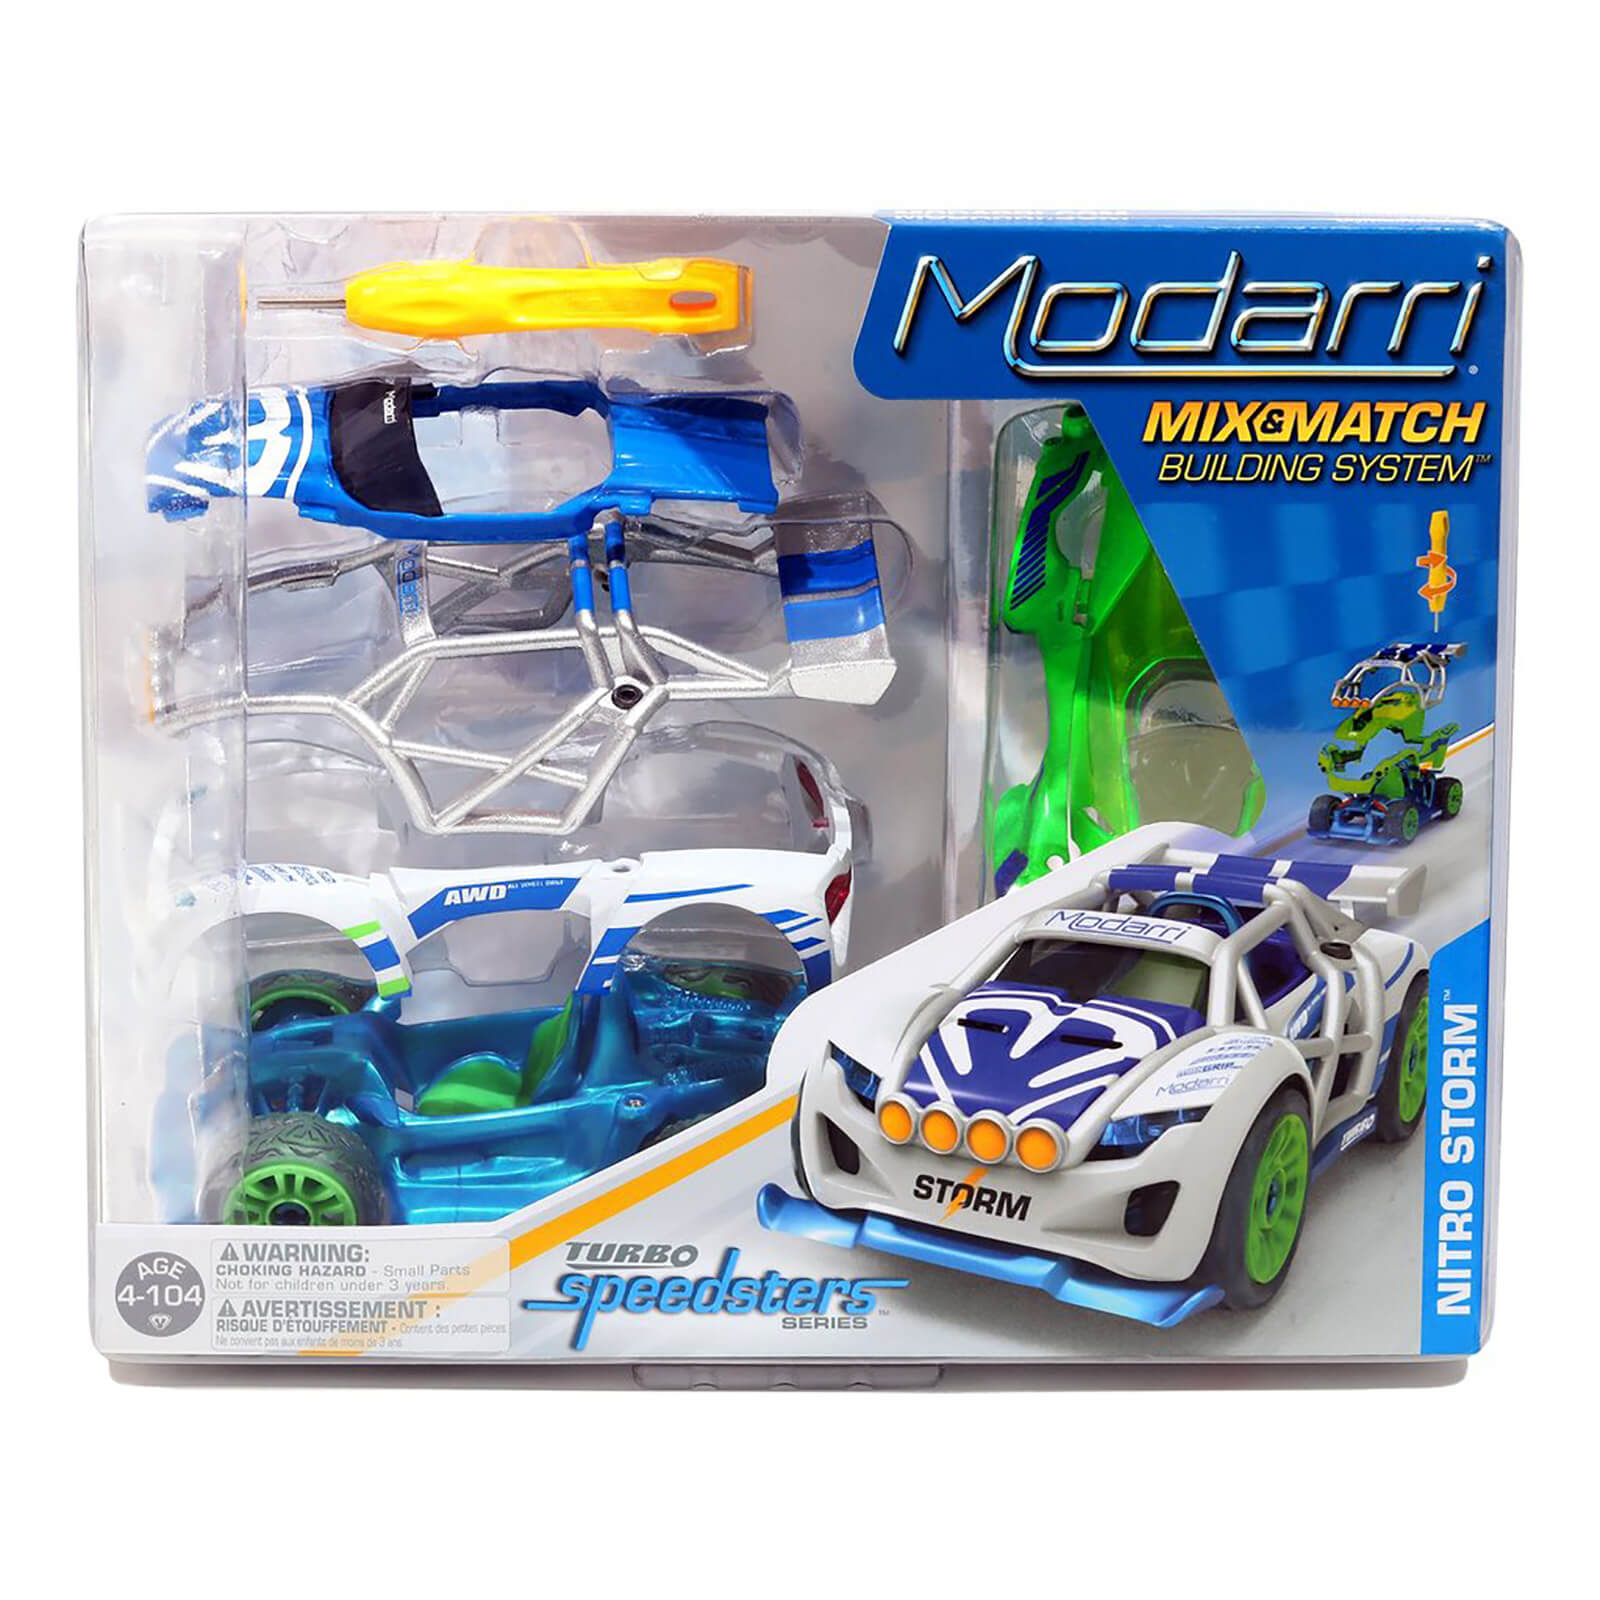 Modarri Nitro Storm Turbo Car